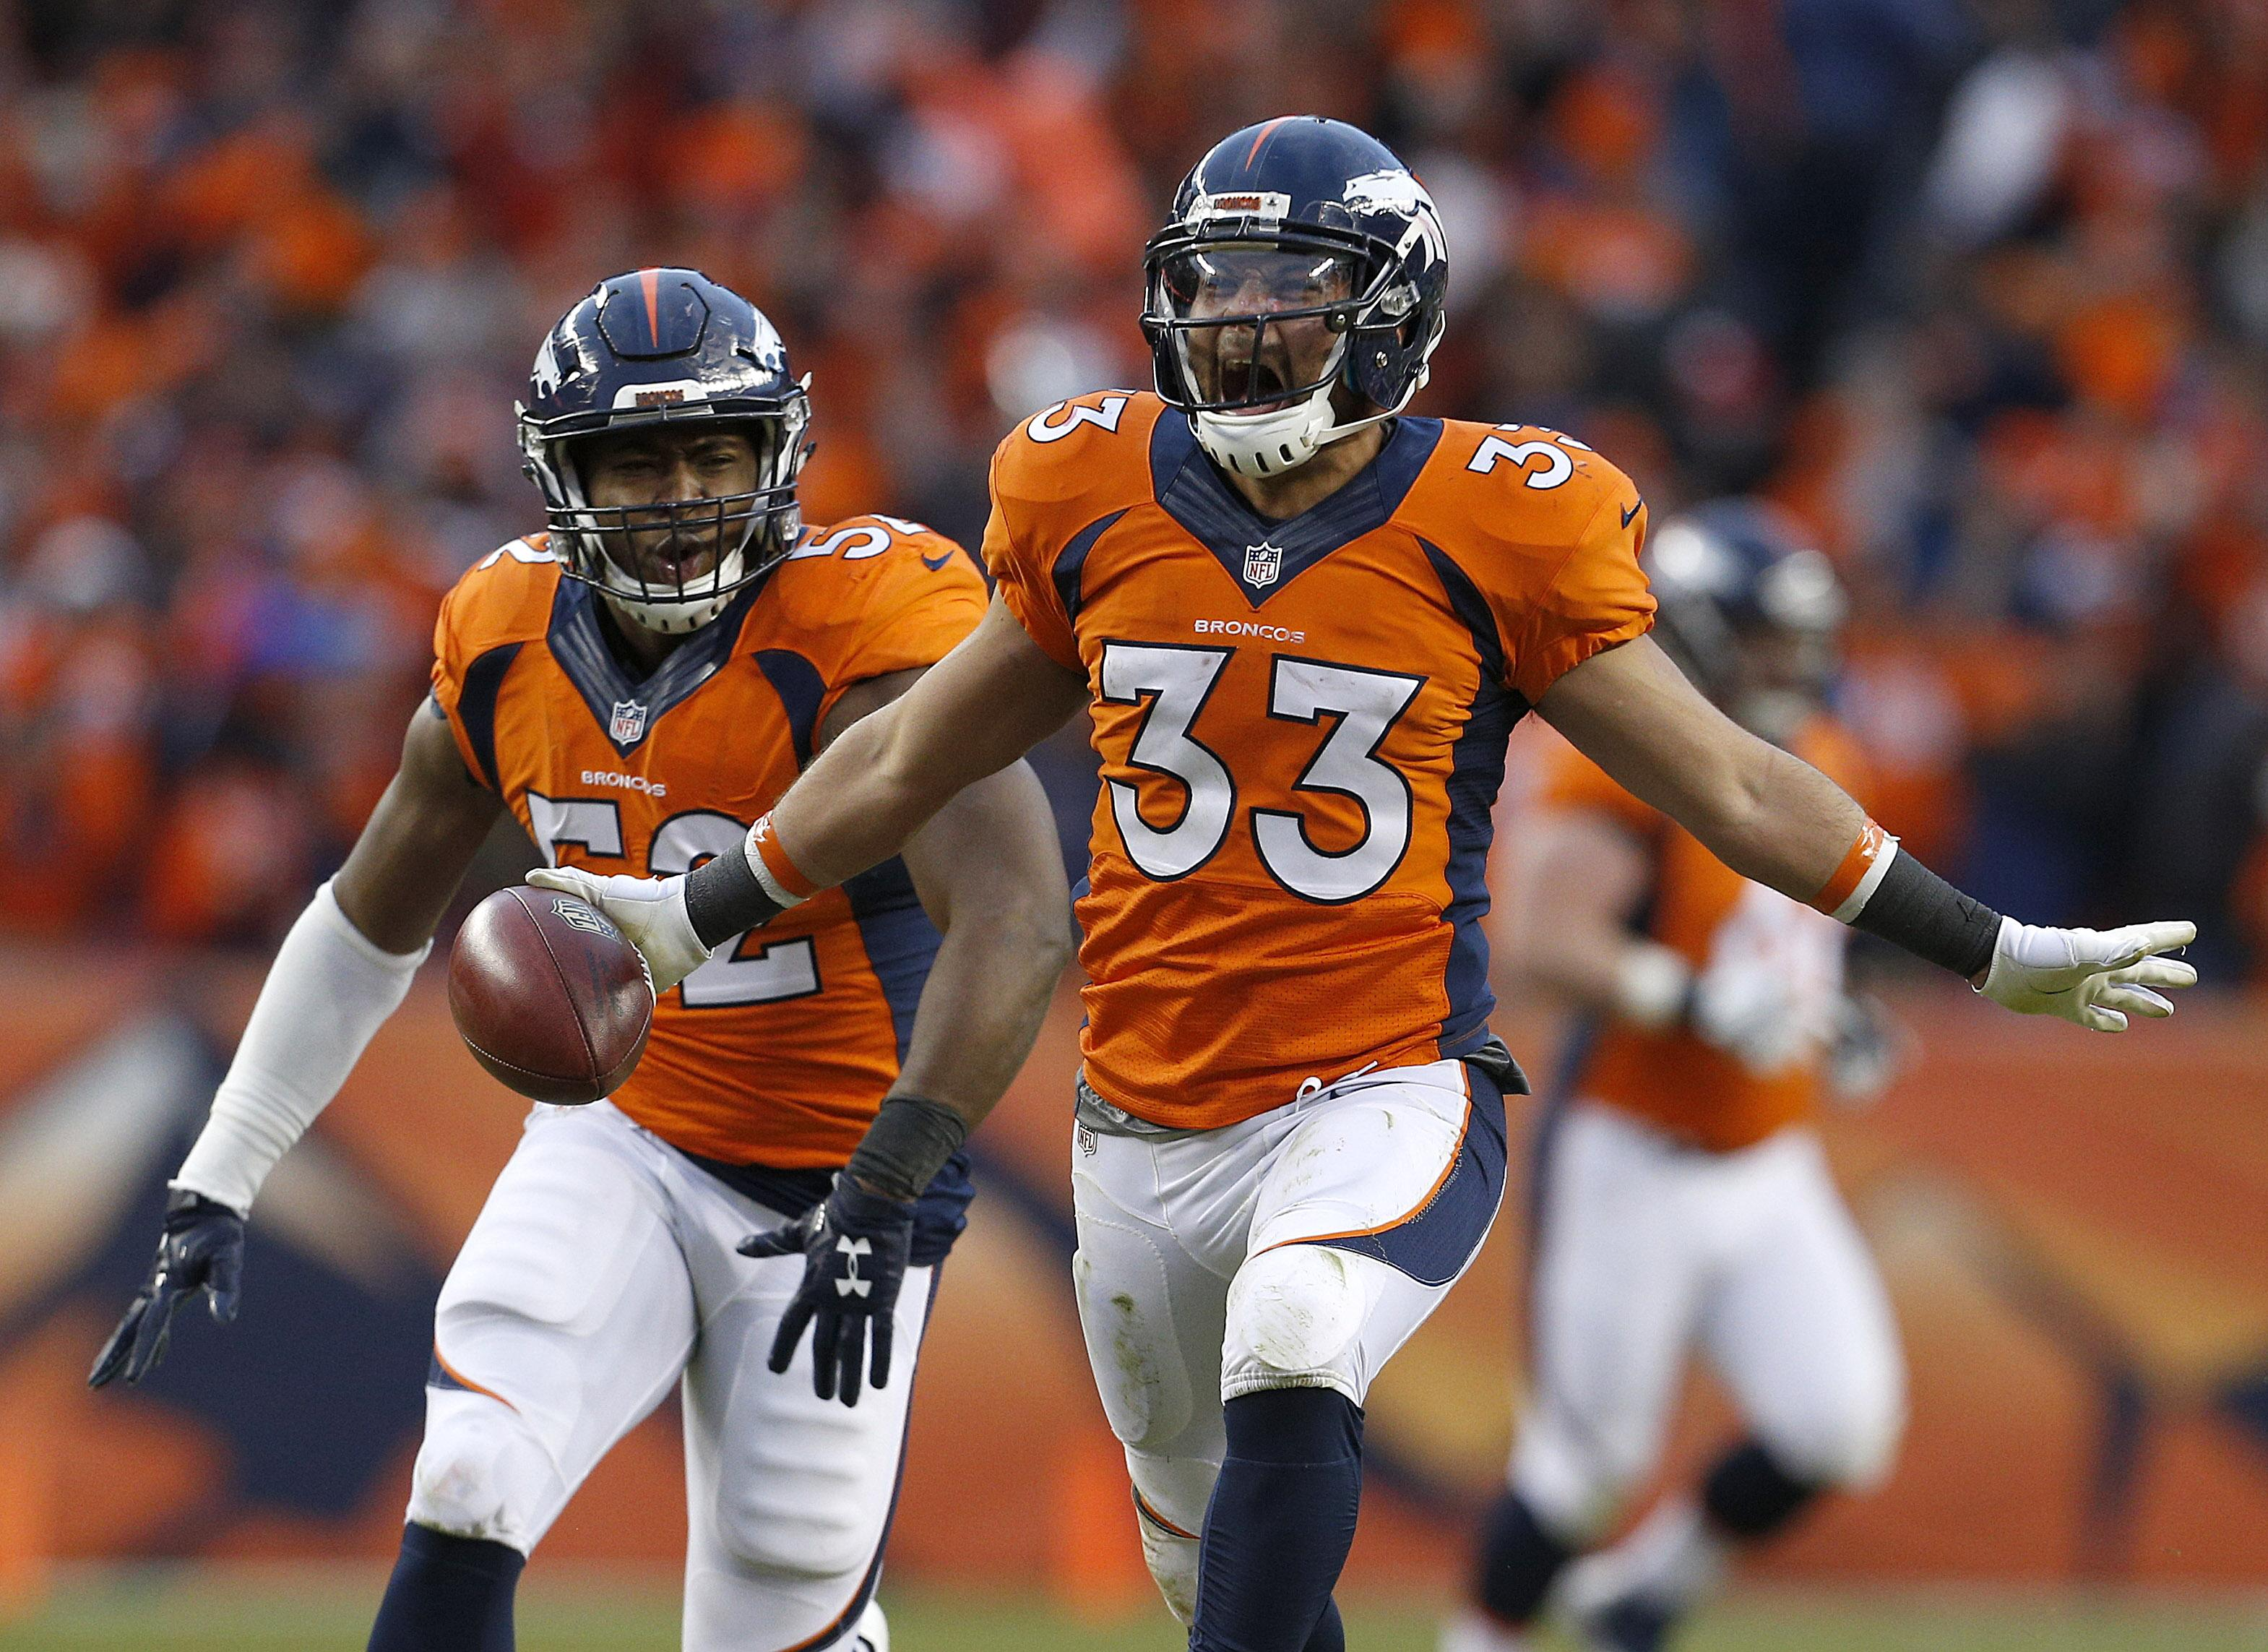 Manning Broncos Scramble To Super Bowl In 20 18 Win Over